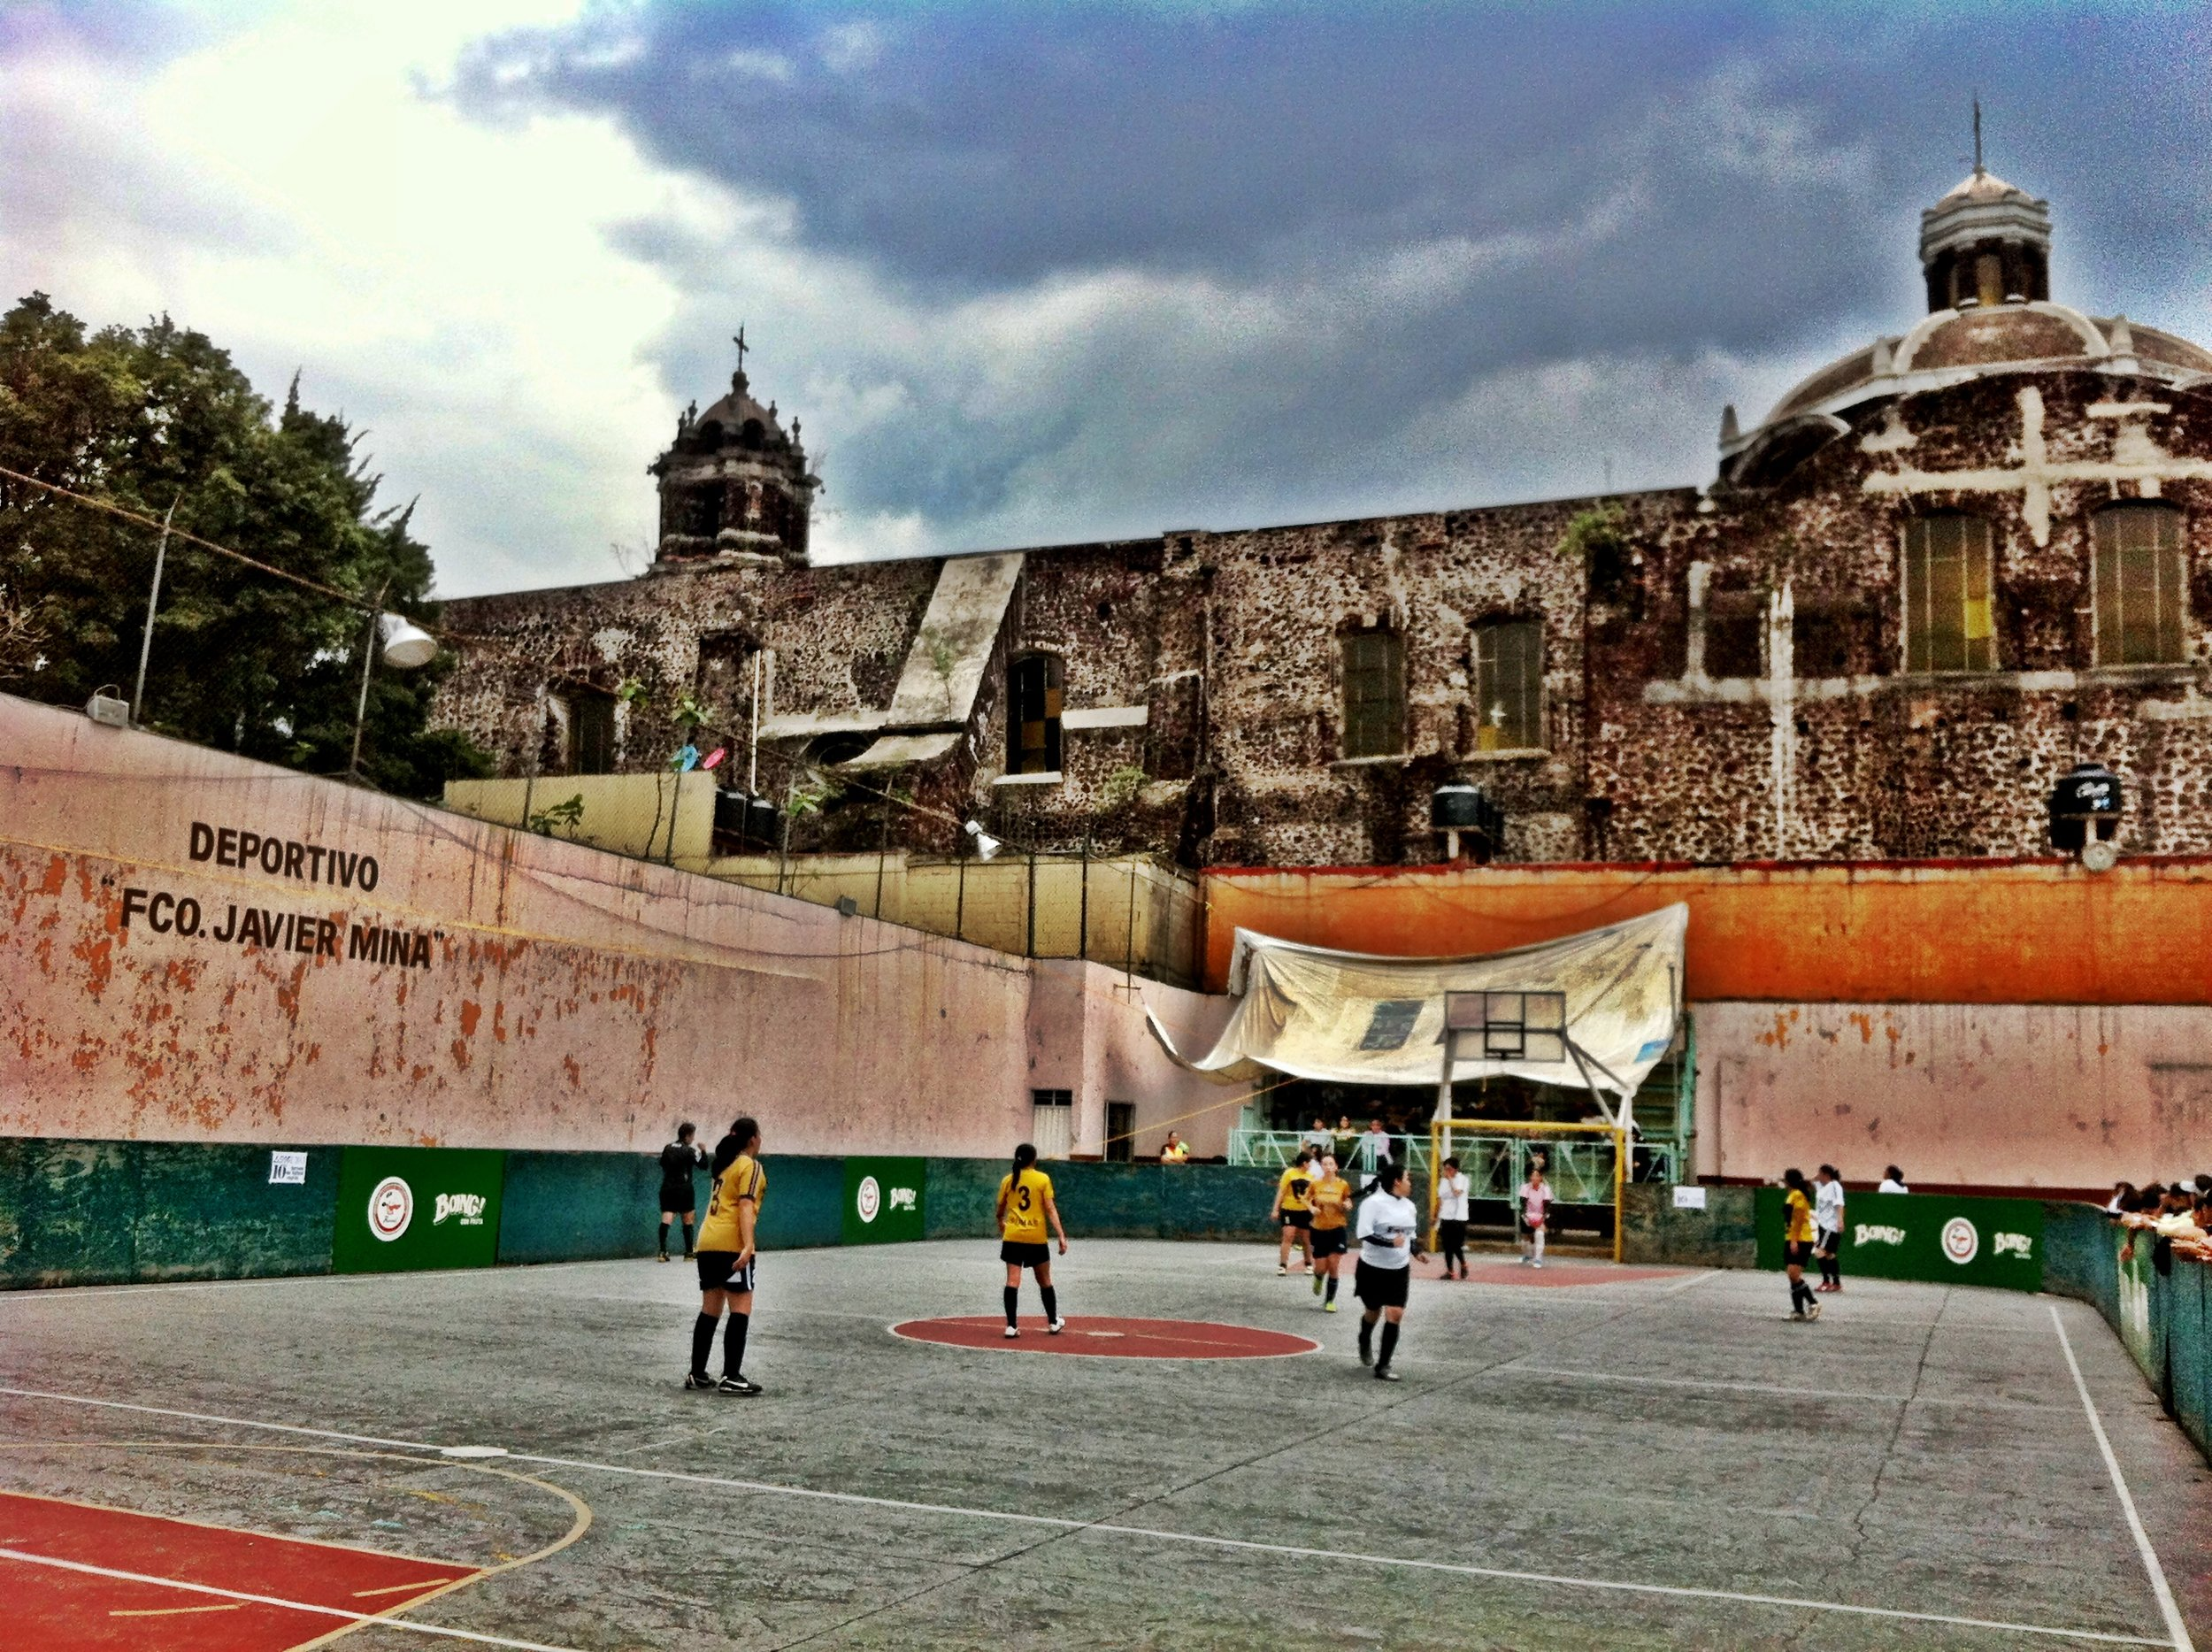 A women's football ream plays in a concrete court in Mexico City